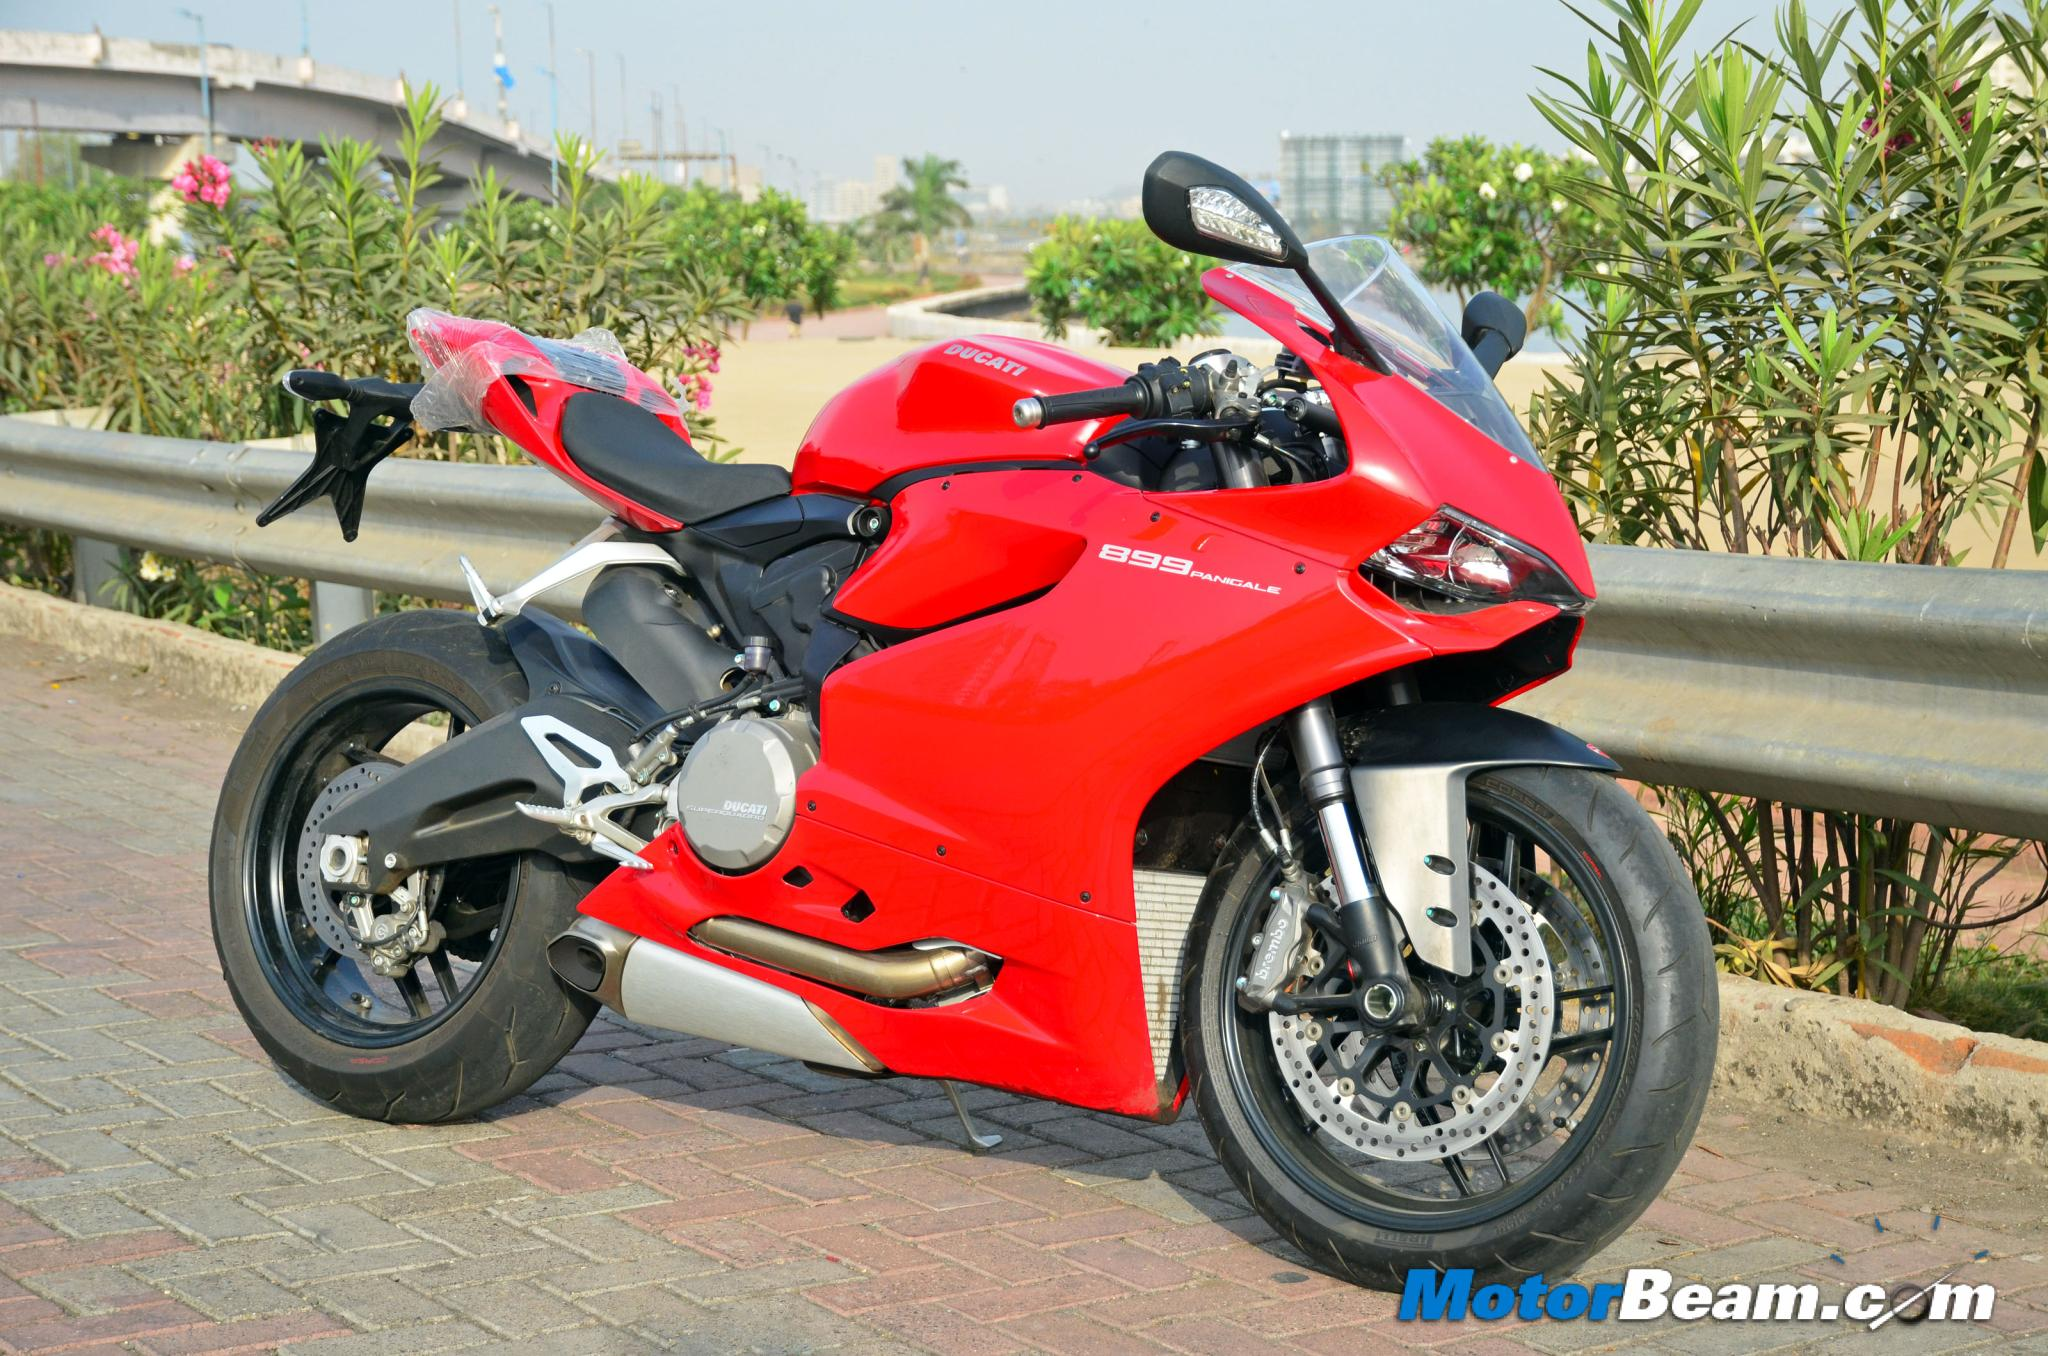 2015 Ducati Panigale 899 India Review